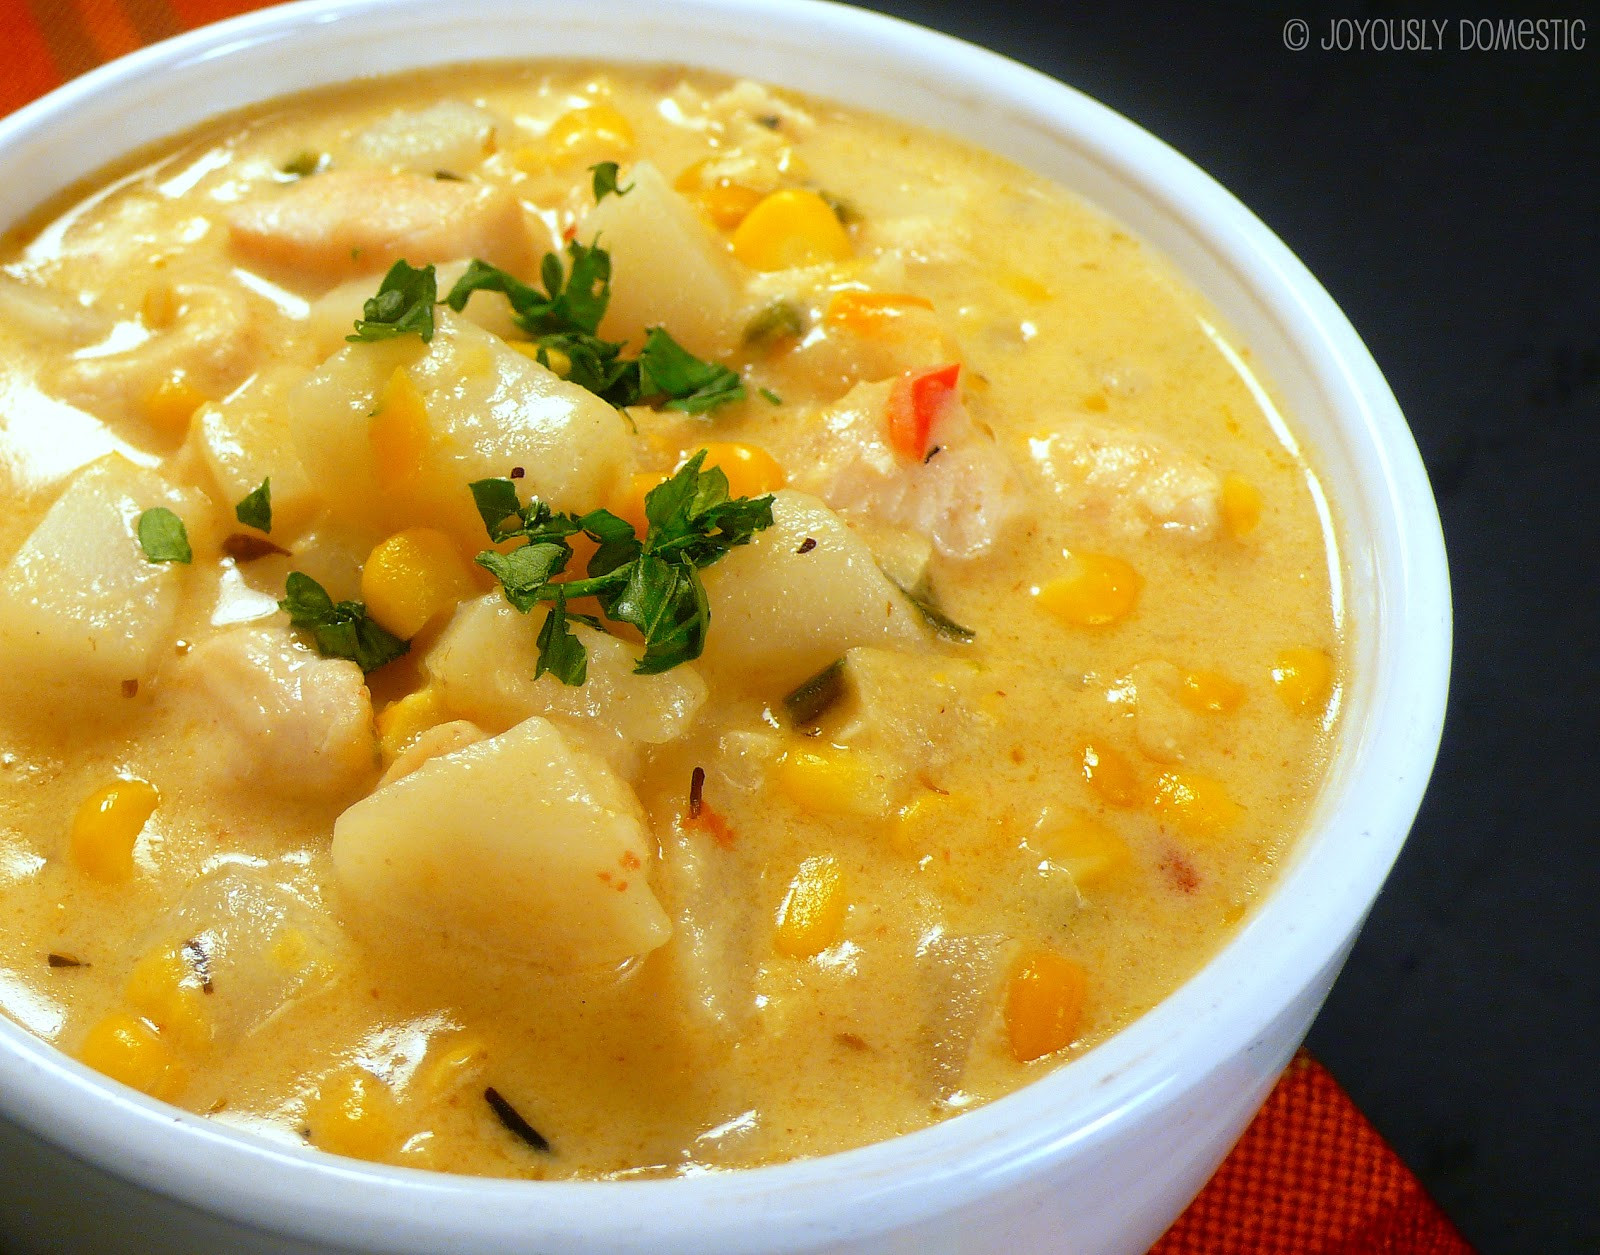 Chicken Corn Chowder  Joyously Domestic Chipotle Chicken and Corn Chowder